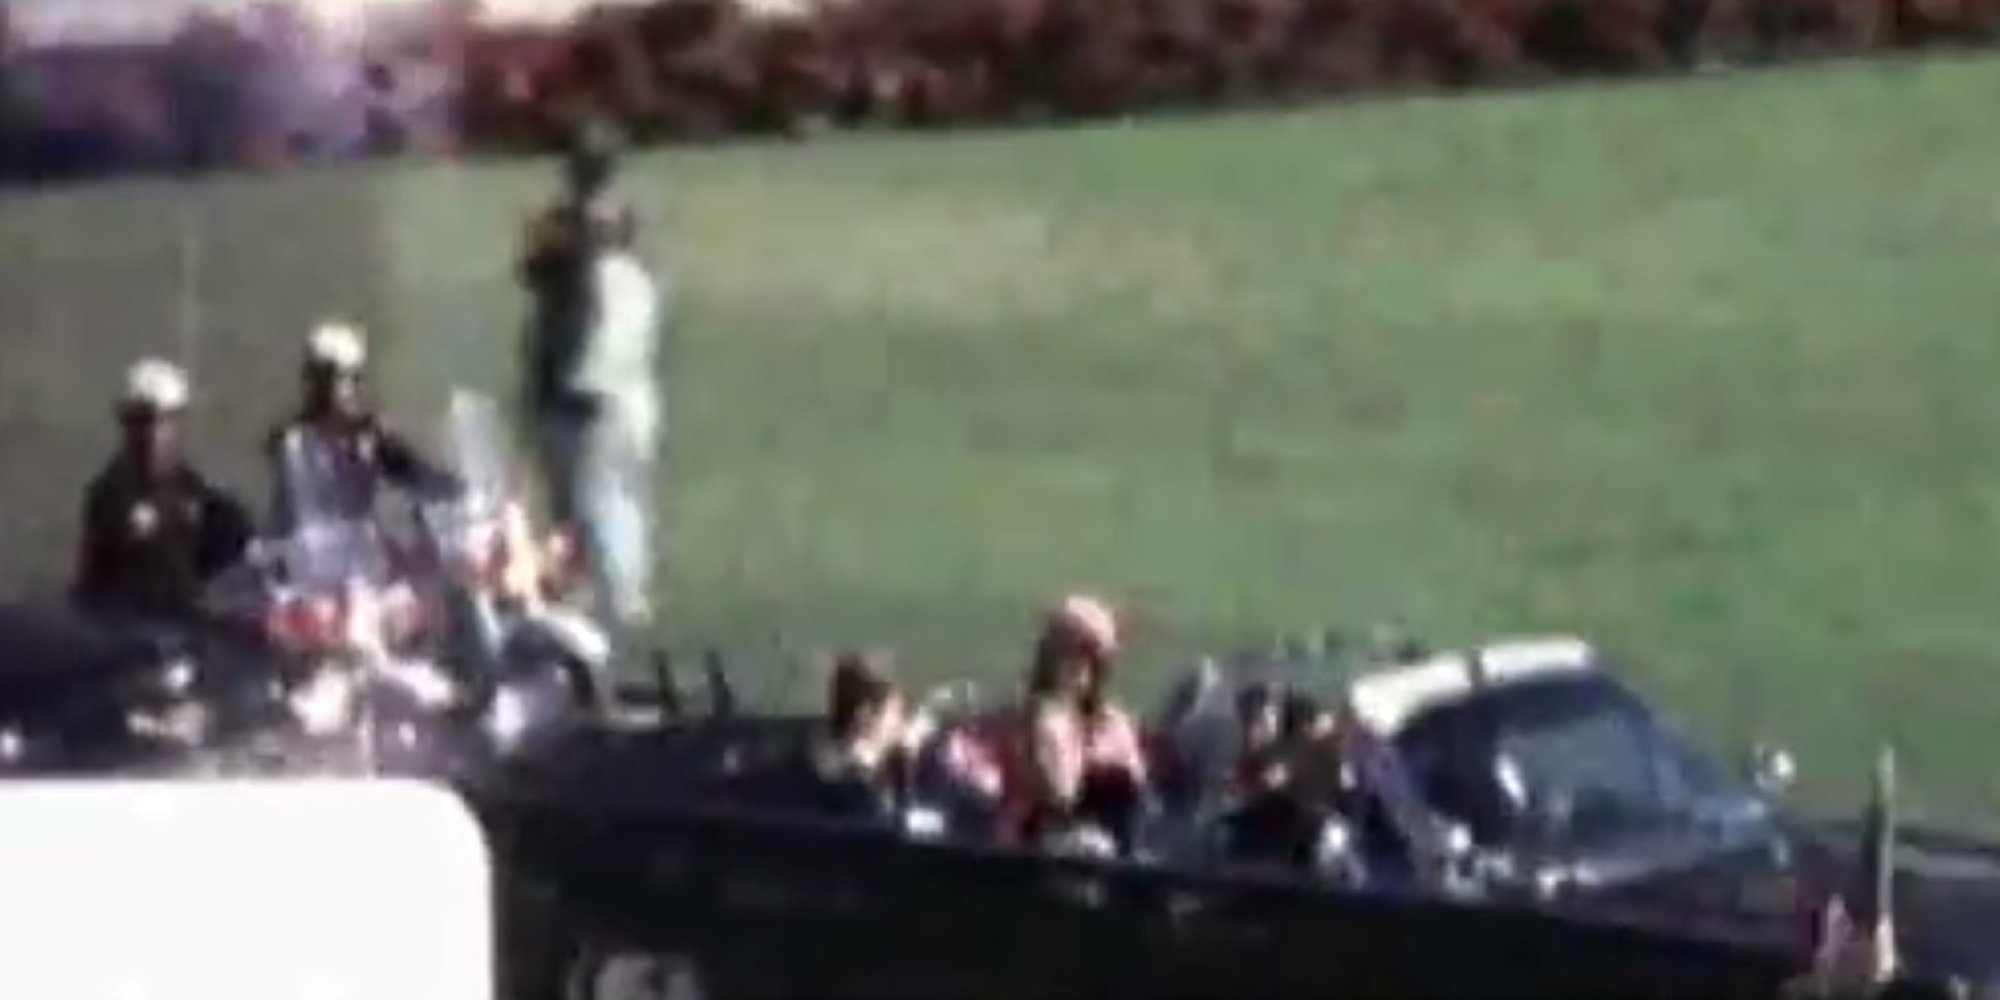 Jfk S Assassination Video Was Kept From The Public For 12